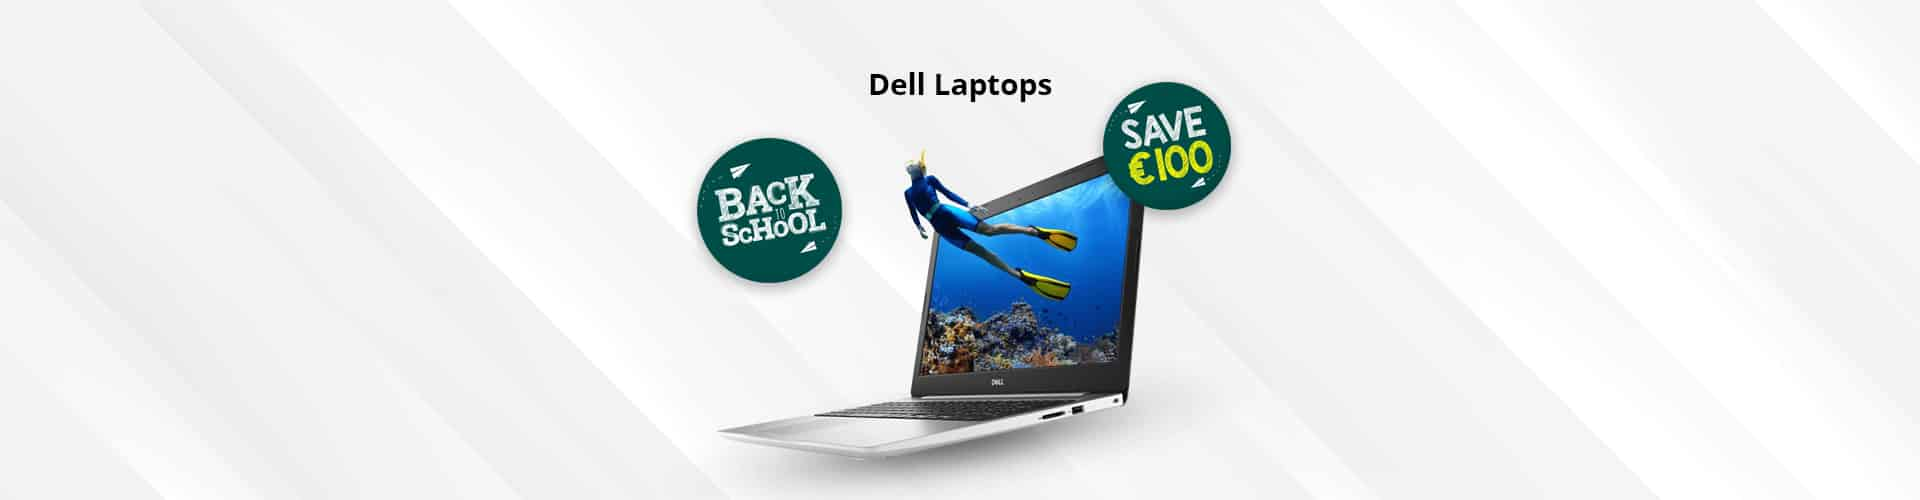 Back To School Offers on Dell Laptops